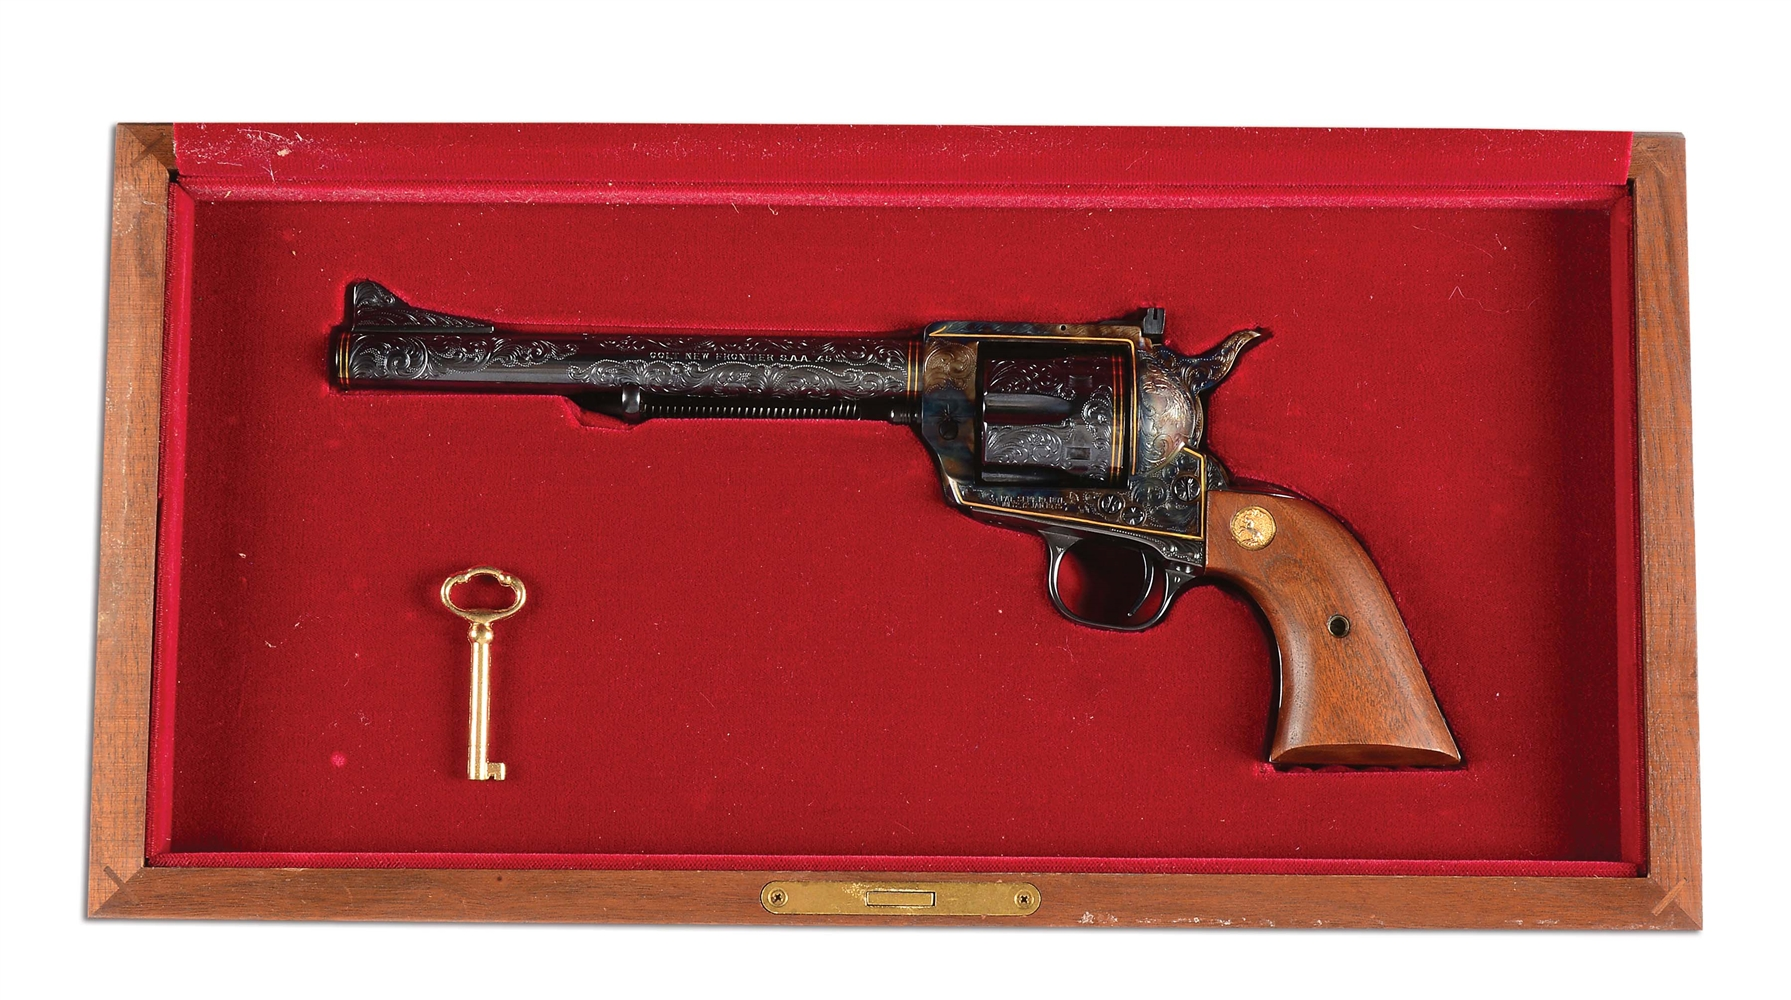 (M) Engraved Colt New Frontier Single Action Revolver with Case (1980).